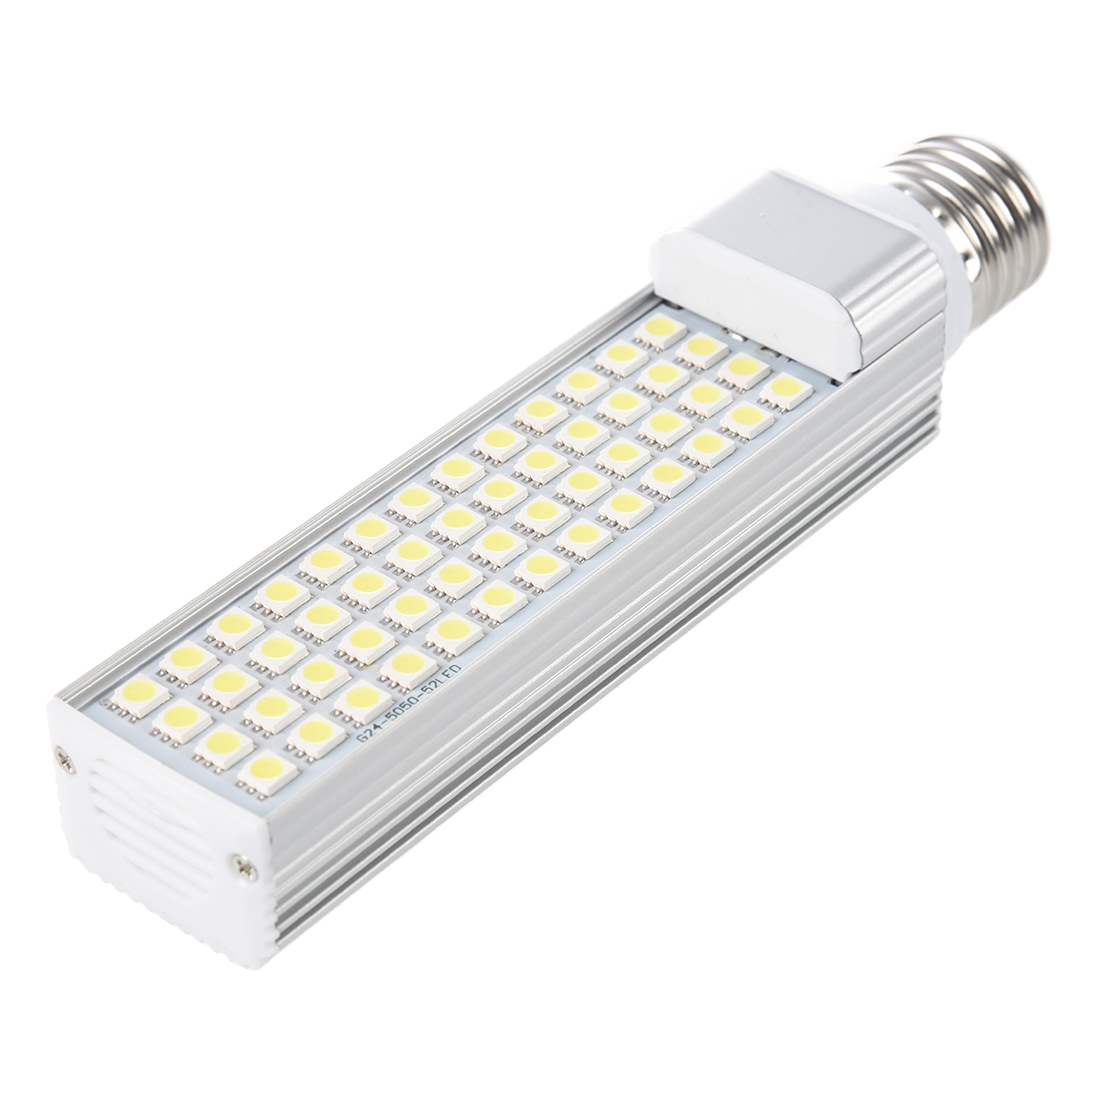 E27 52 5050 smd led portalampada 11w ac 85 265v bianco for Portalampada led